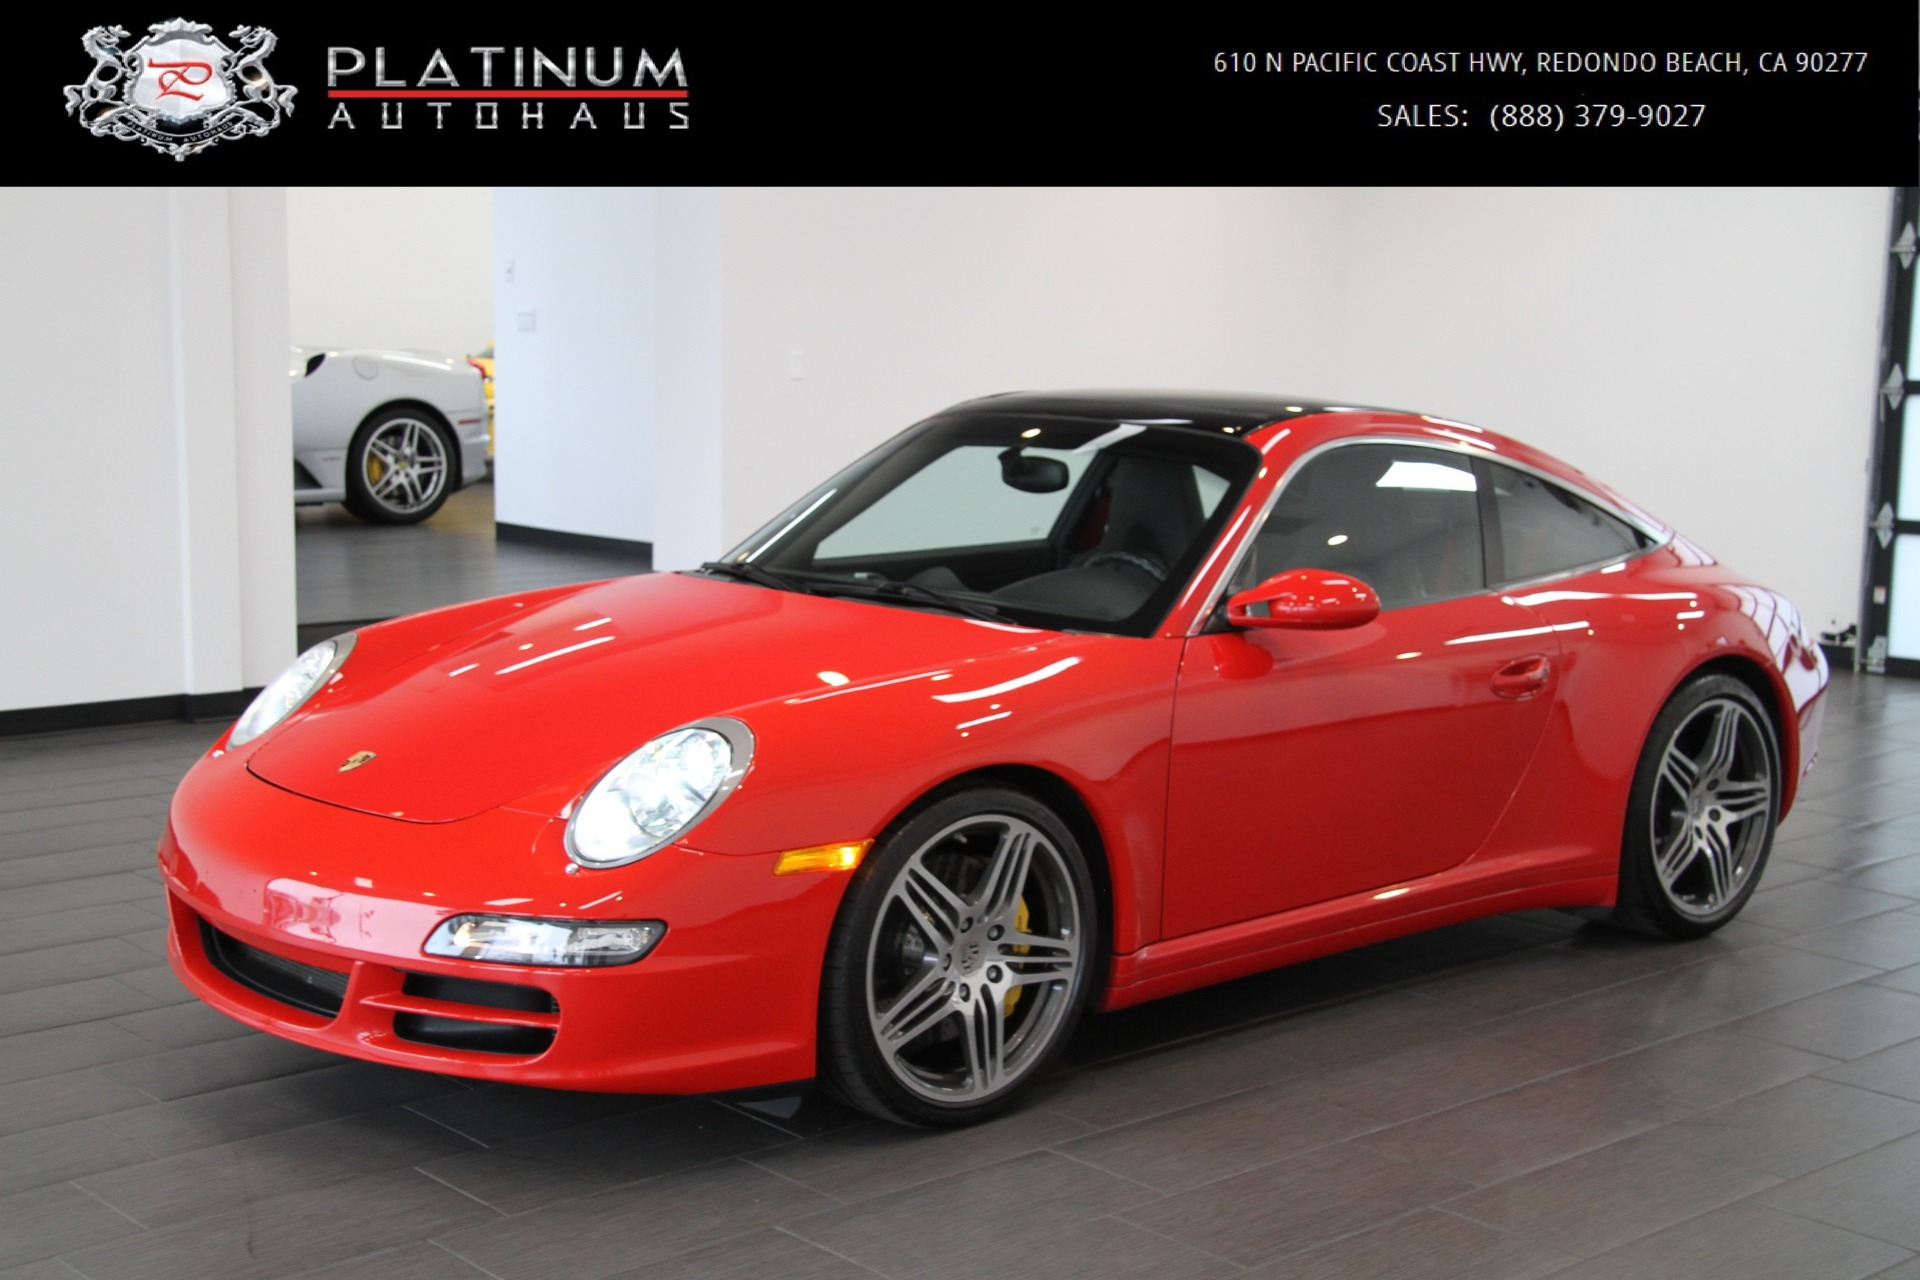 2007 porsche 911 targa 4s original msrp of 147 265. Black Bedroom Furniture Sets. Home Design Ideas